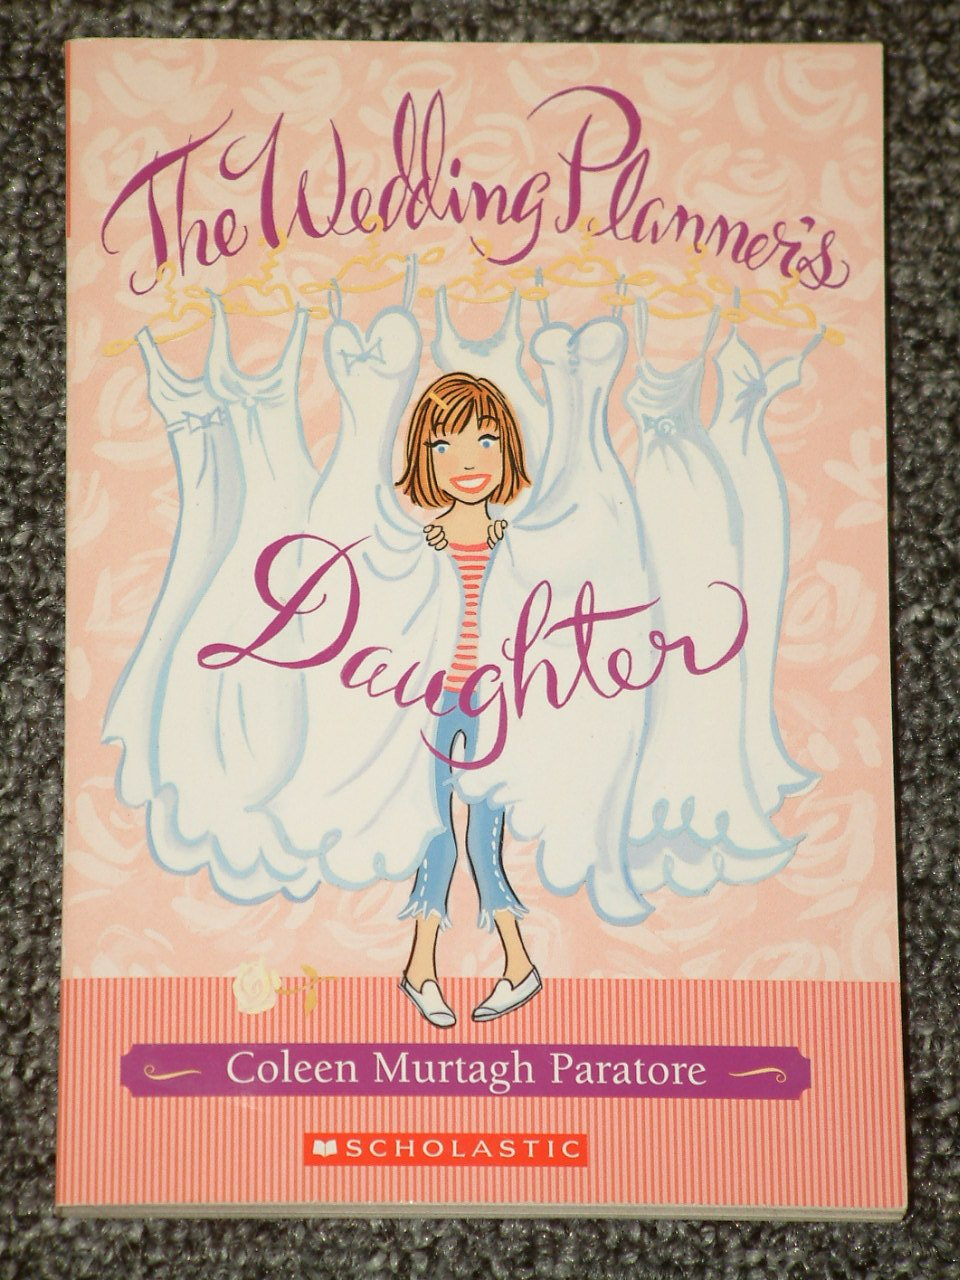 The Wedding Planner's Daughter by Coleen Murtagh Paratore